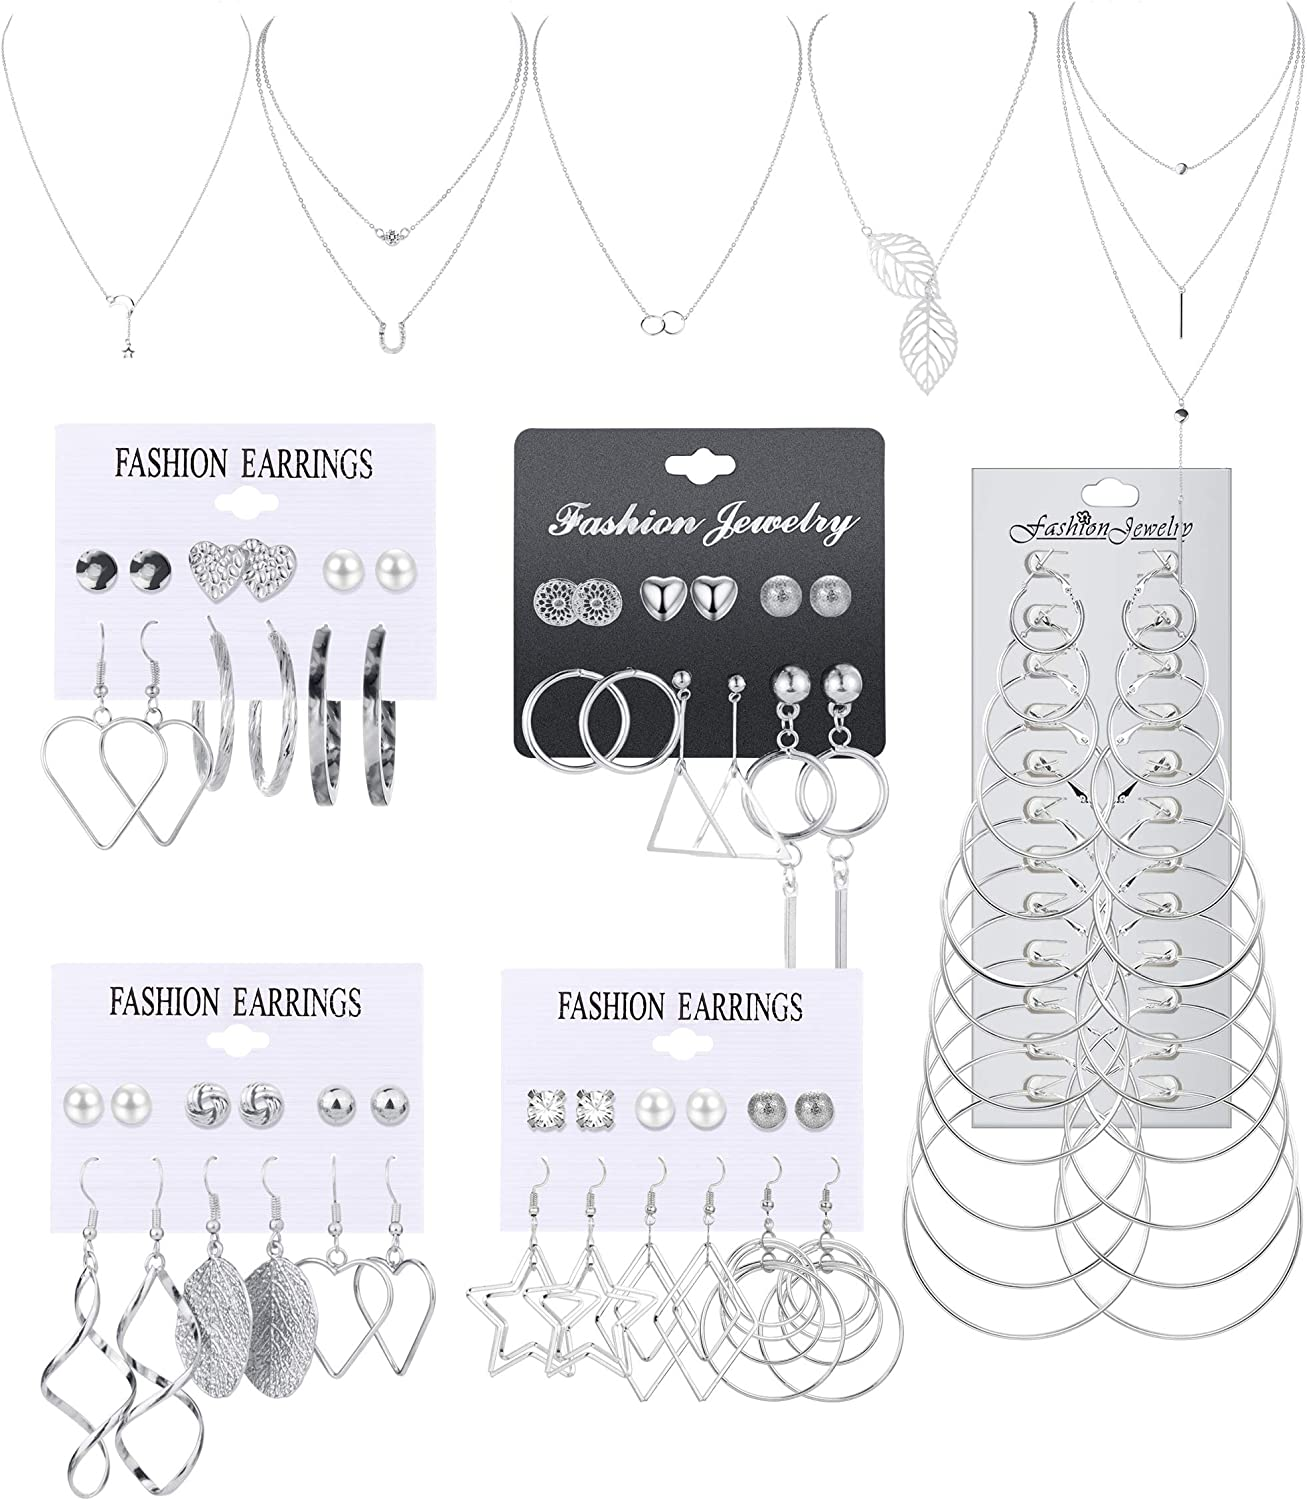 ORAZIO Necklace and Earring Jewelry Set with 36 Pairs Layered Ball Dangle Hoop Stud Earrings and 5 PCS Necklaces of Different Lengths for Women Jewelry Fashion and Valentine Birthday Party Gift